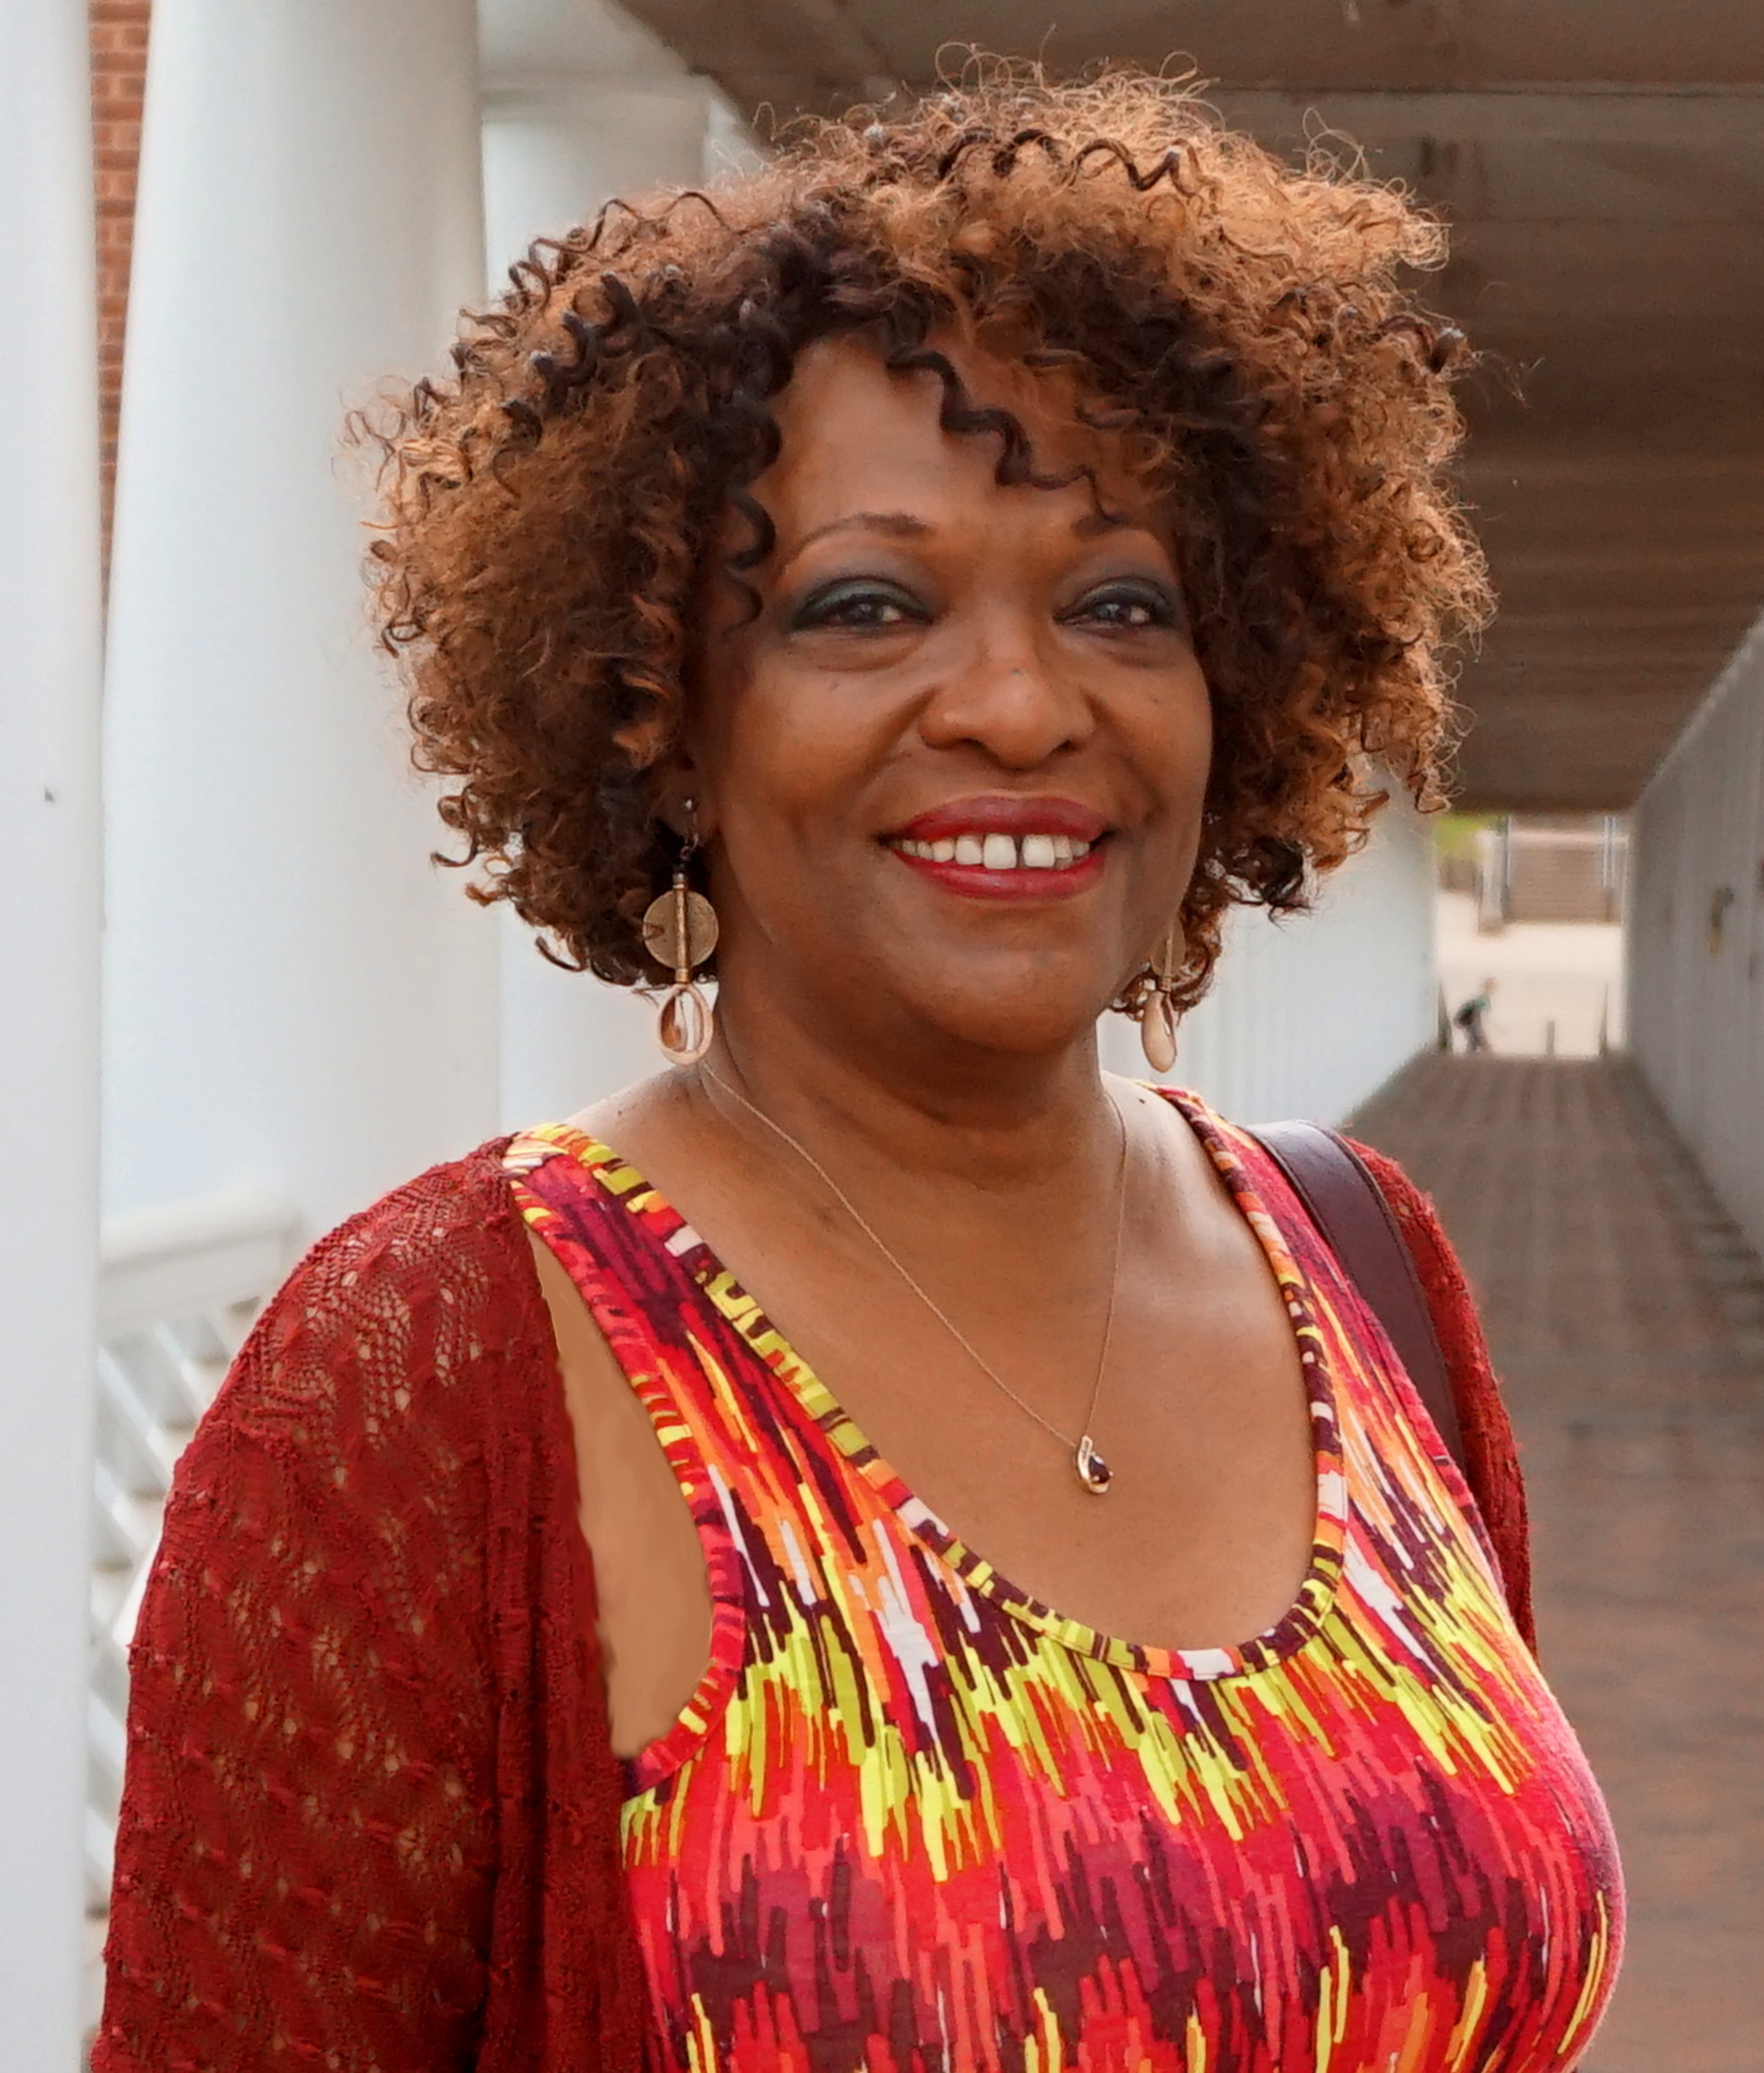 Copy of Rita Dove | April 10, 2017